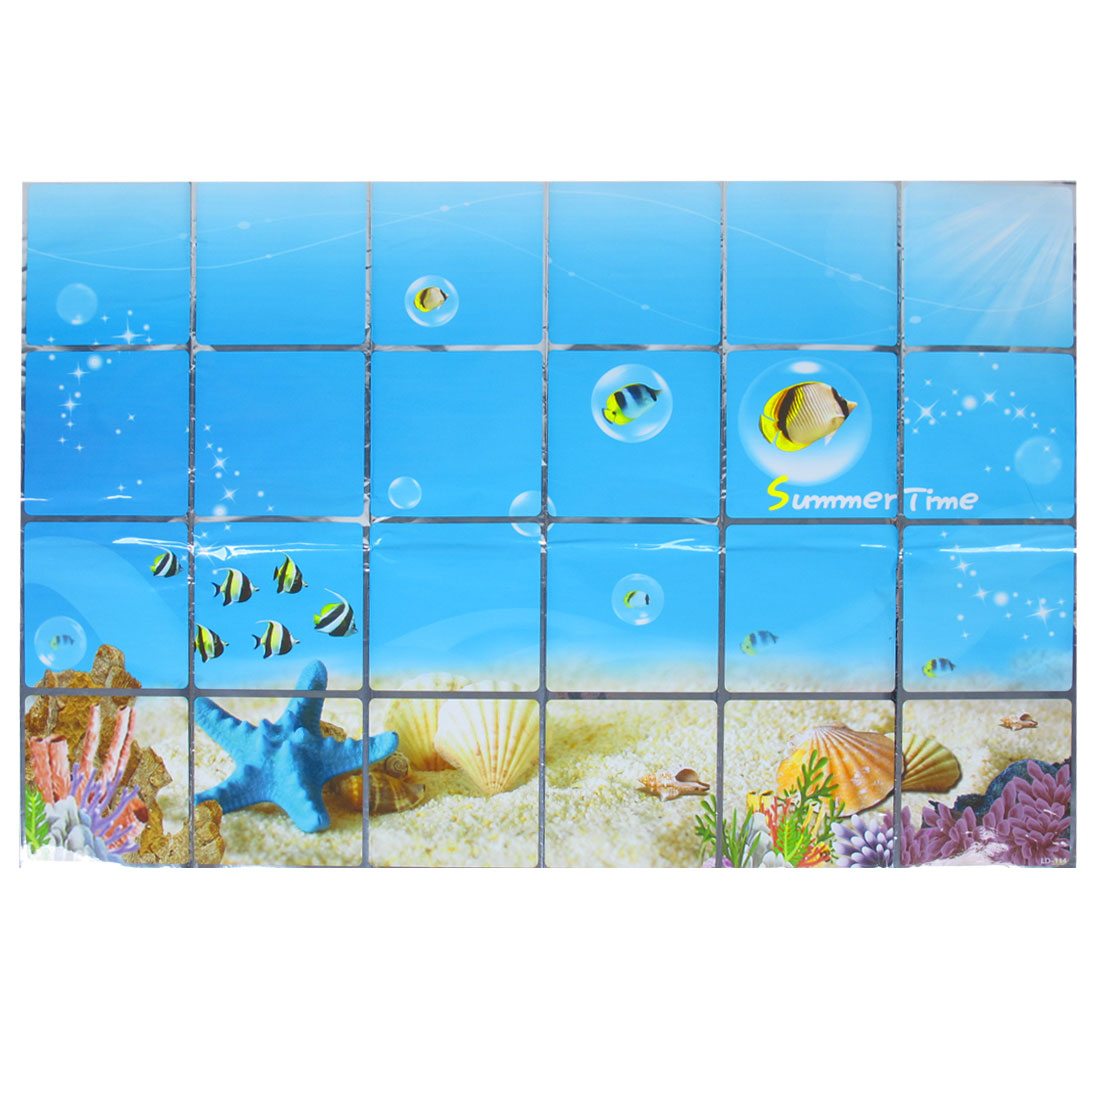 Kitchen Sheet Sky Blue Seabed Print Wall Sticker Decal 90cm x 60cm